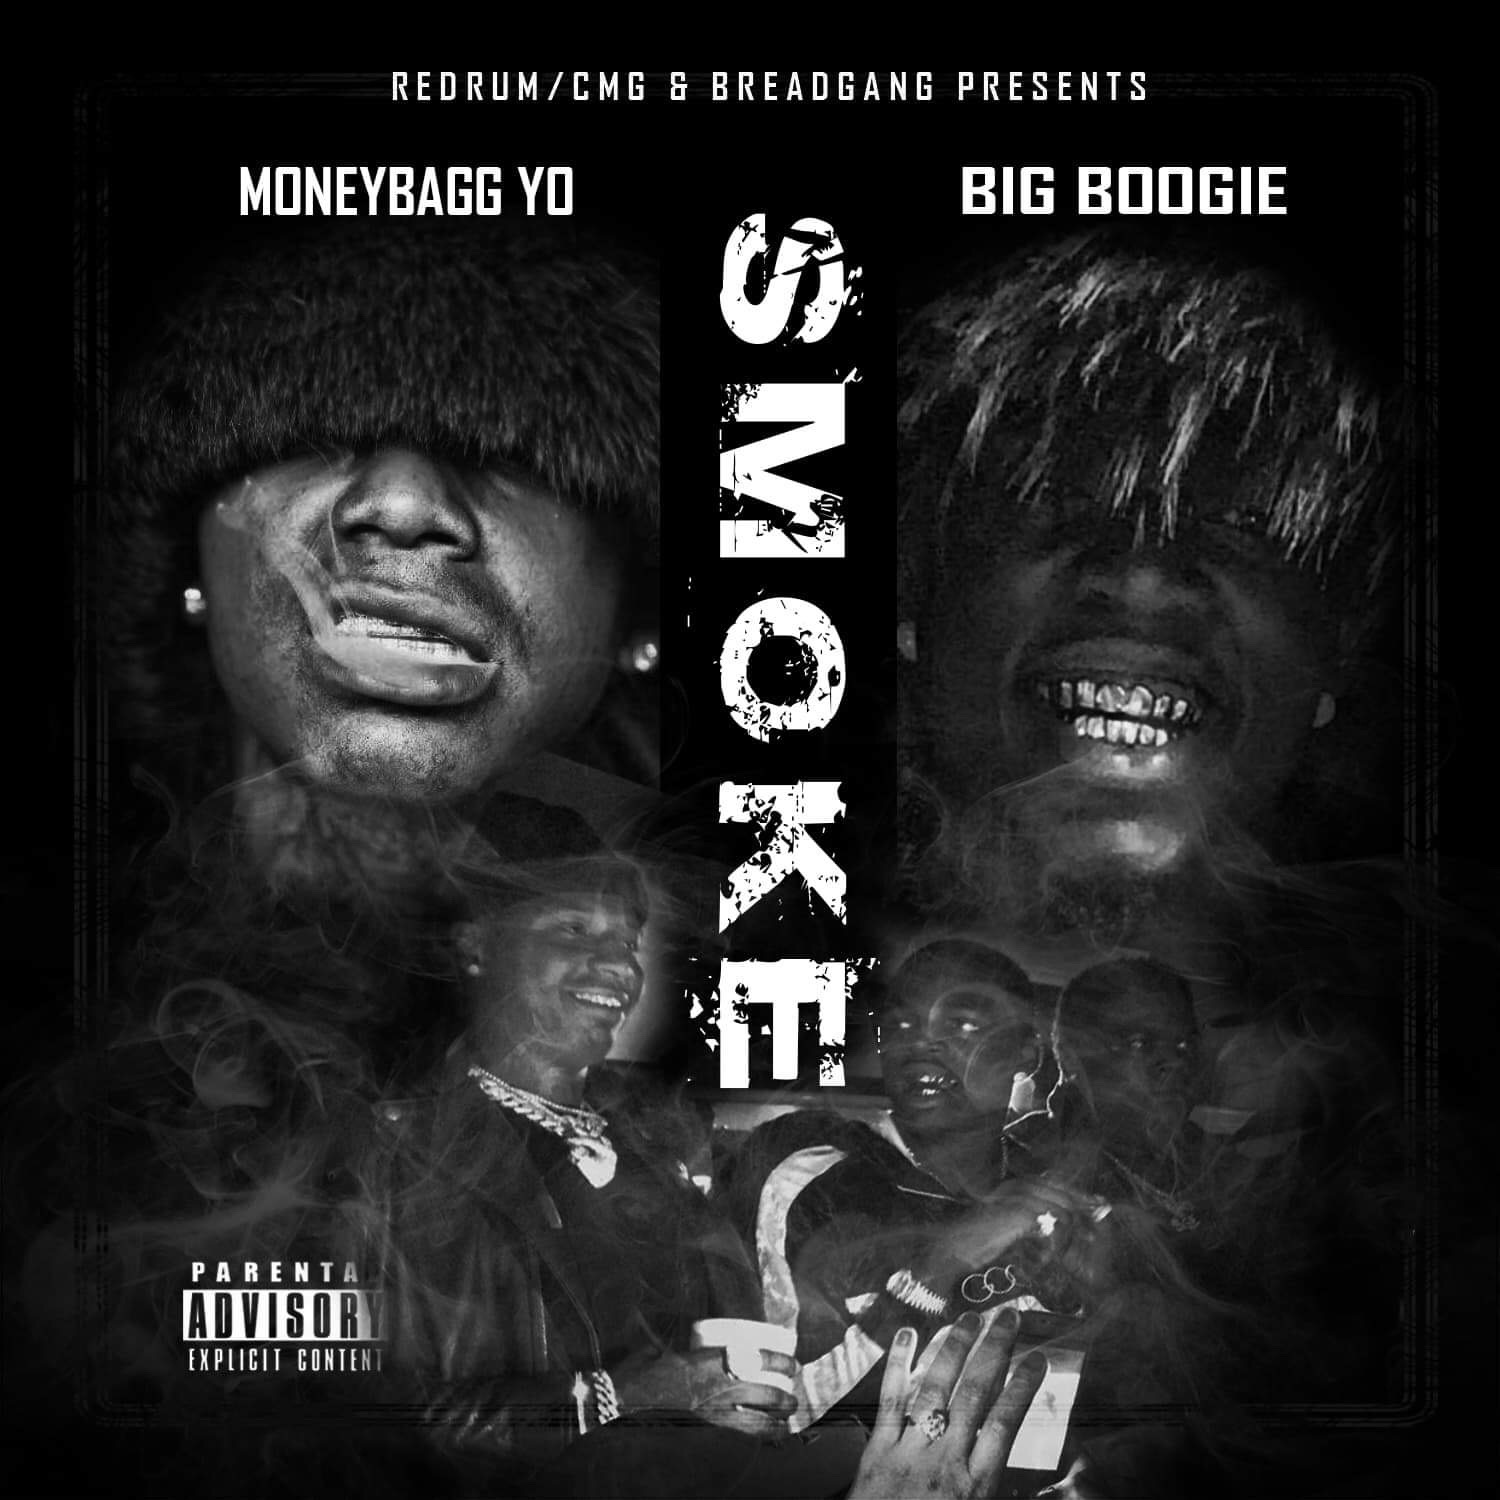 Moneybagg Yo Height: Big Boogie Music - Smoke (Feat. MoneyBagg Yo)